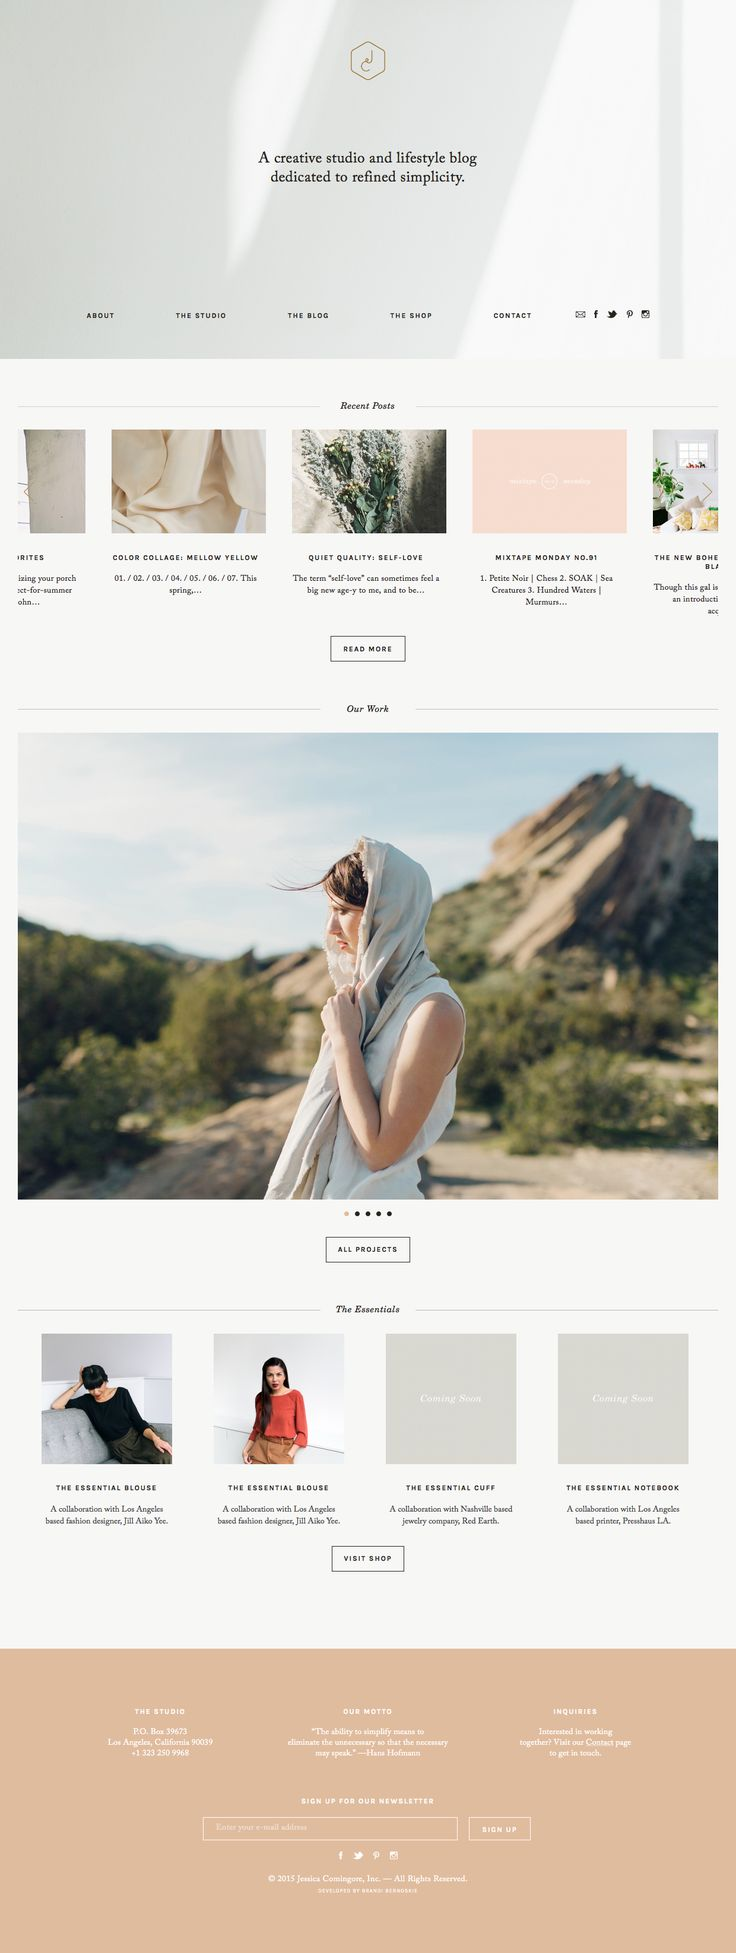 Custom website with extensive portfolio including custom features, shop built with Woocommerce, and blog with multiple layout options.